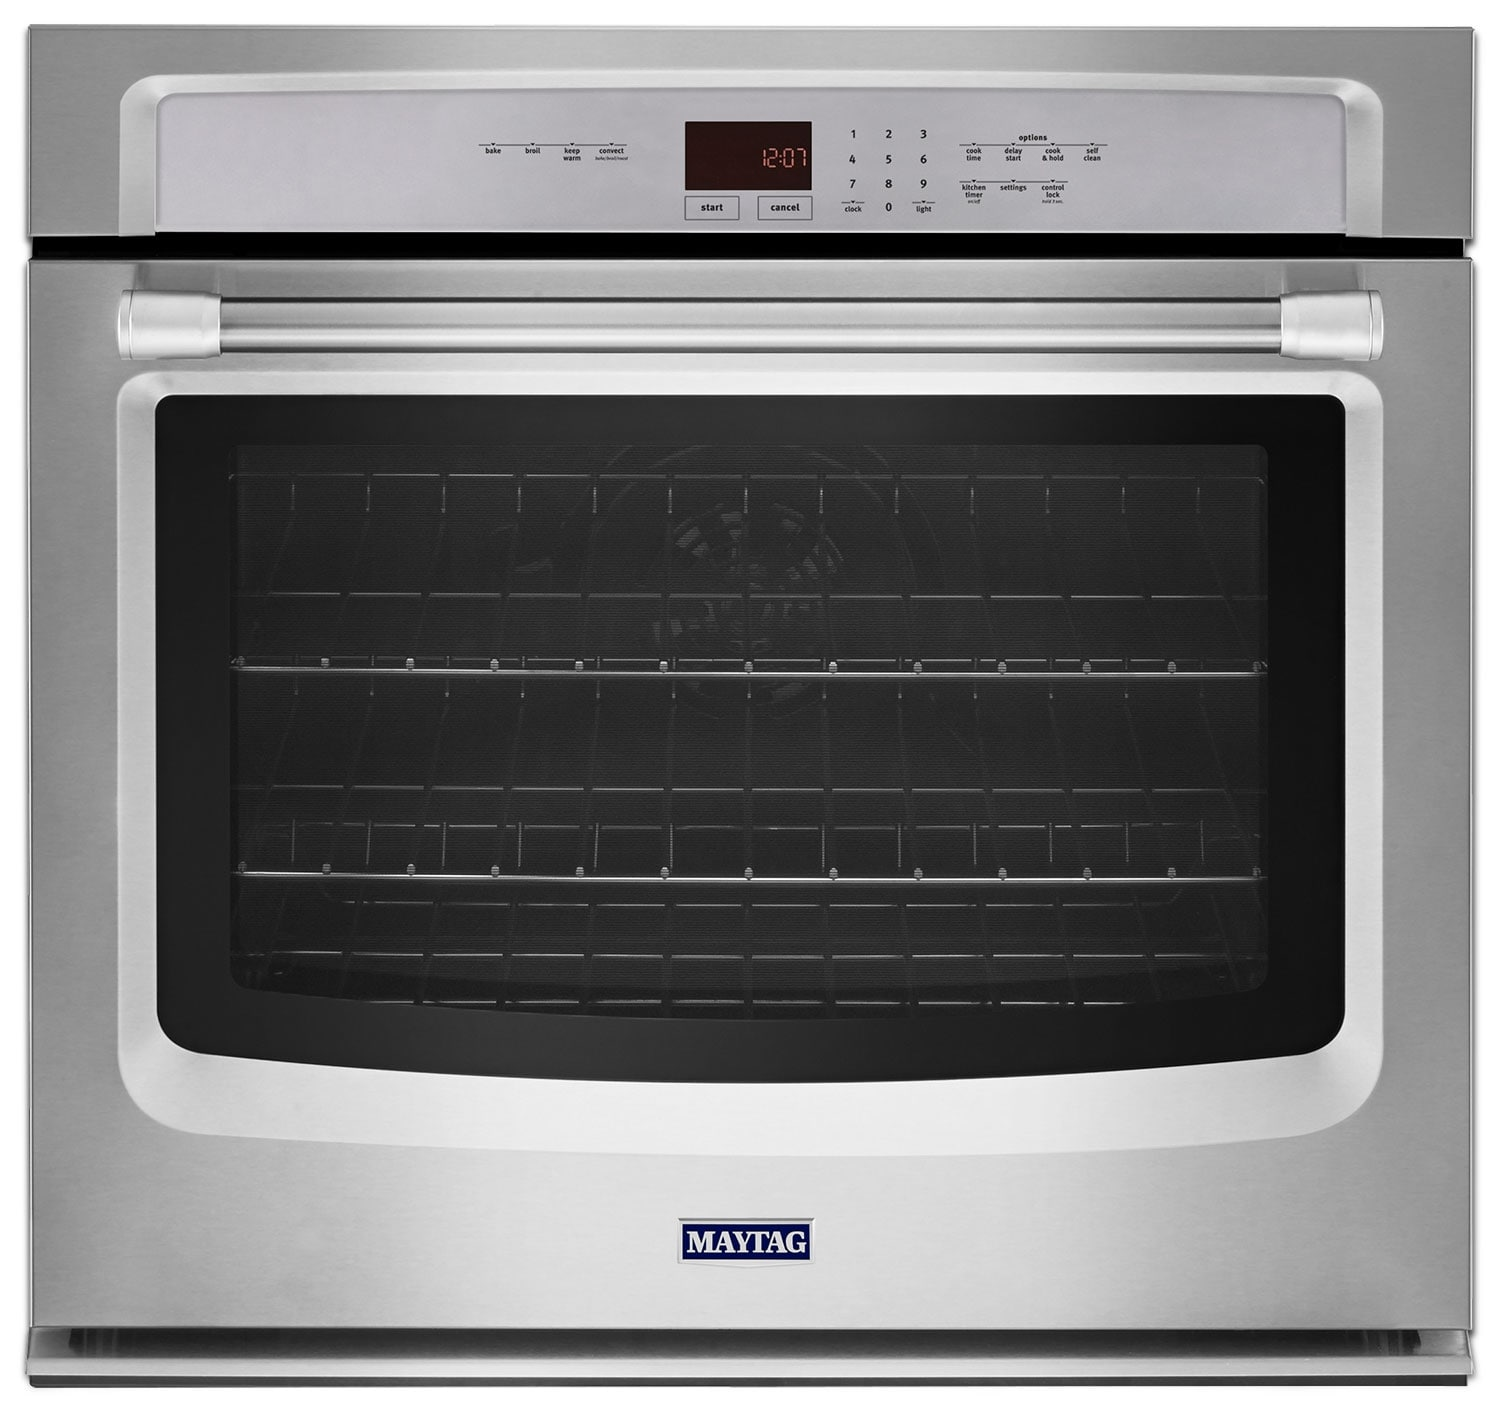 Maytag Stainless Steel Convection Wall Oven (4.3 Cu. Ft.) - MEW9527DS